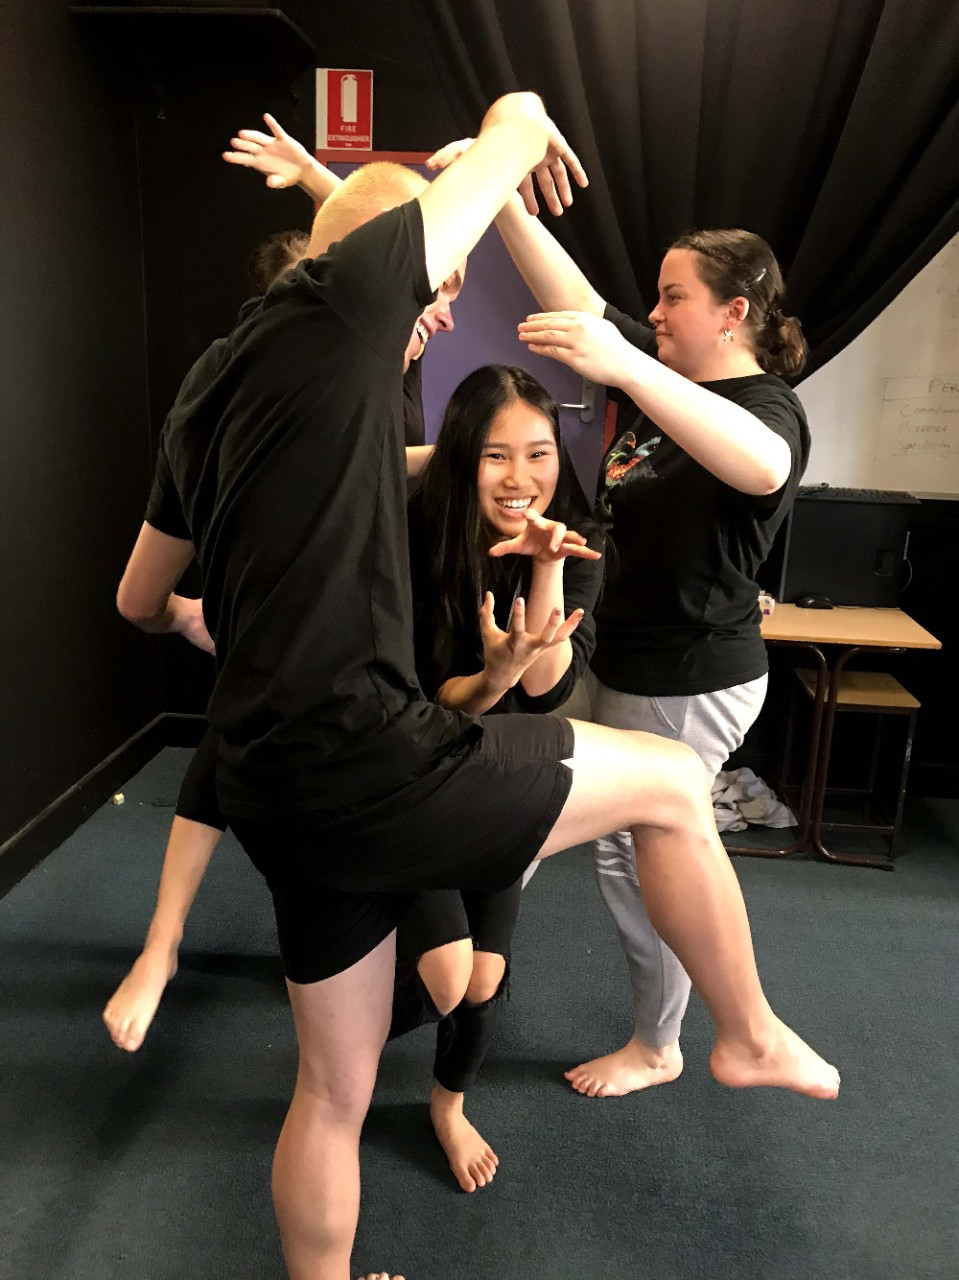 3 students working together to create a static pose